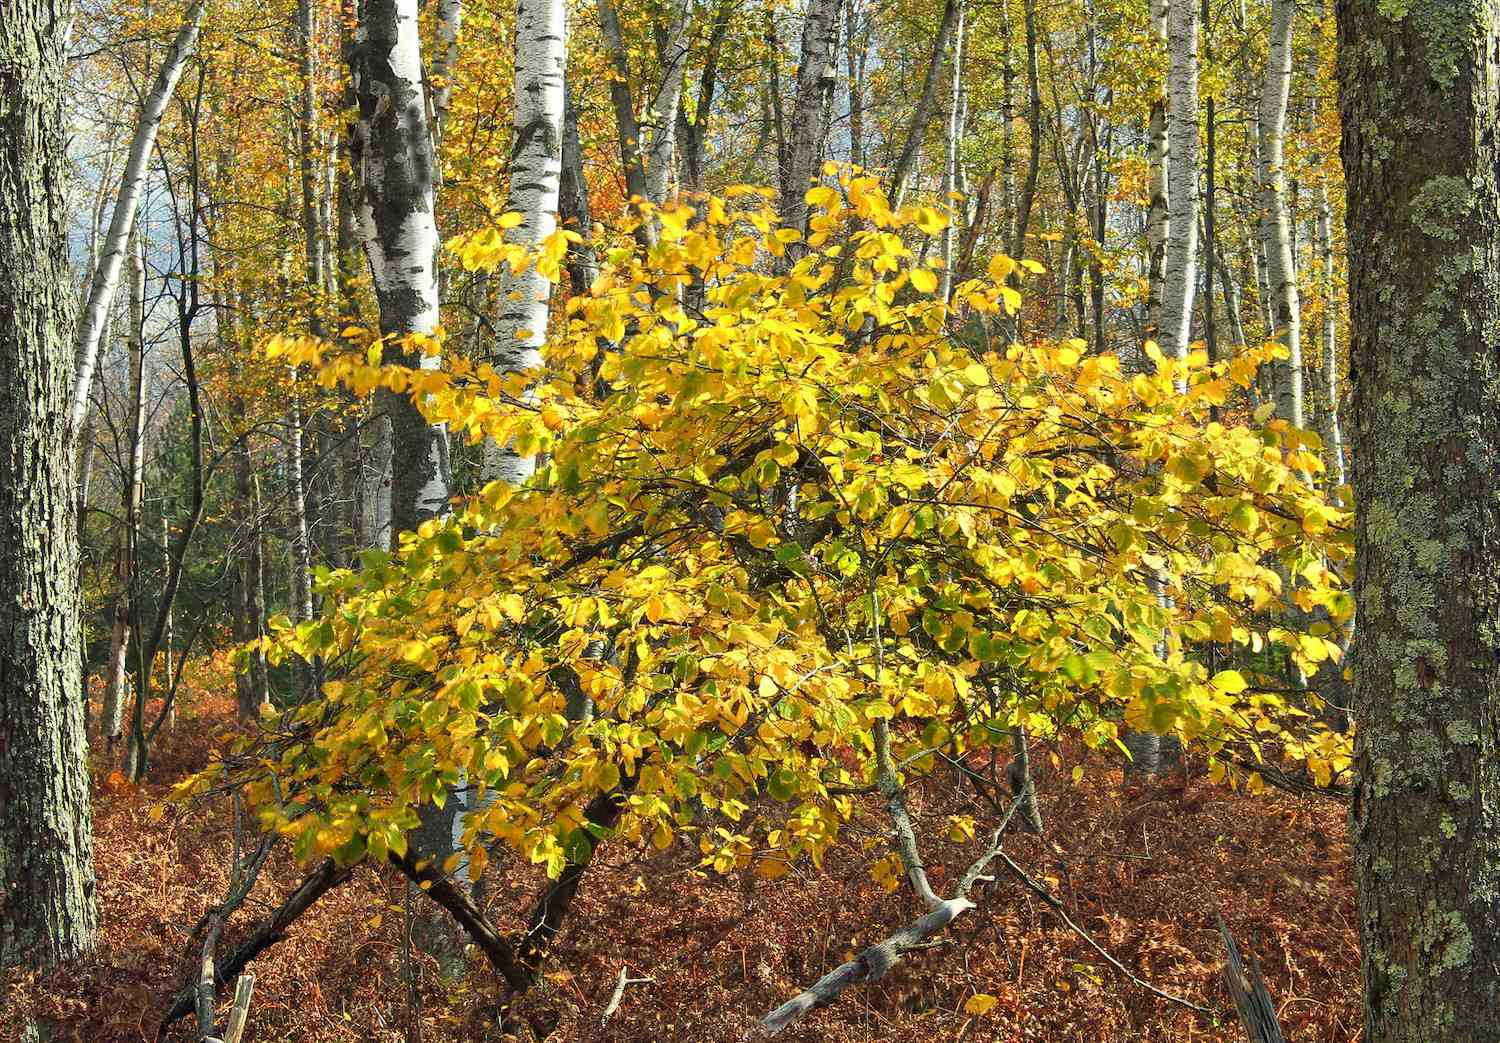 The bright yellow-orange leaves of a common witch hazel tree in full bloom